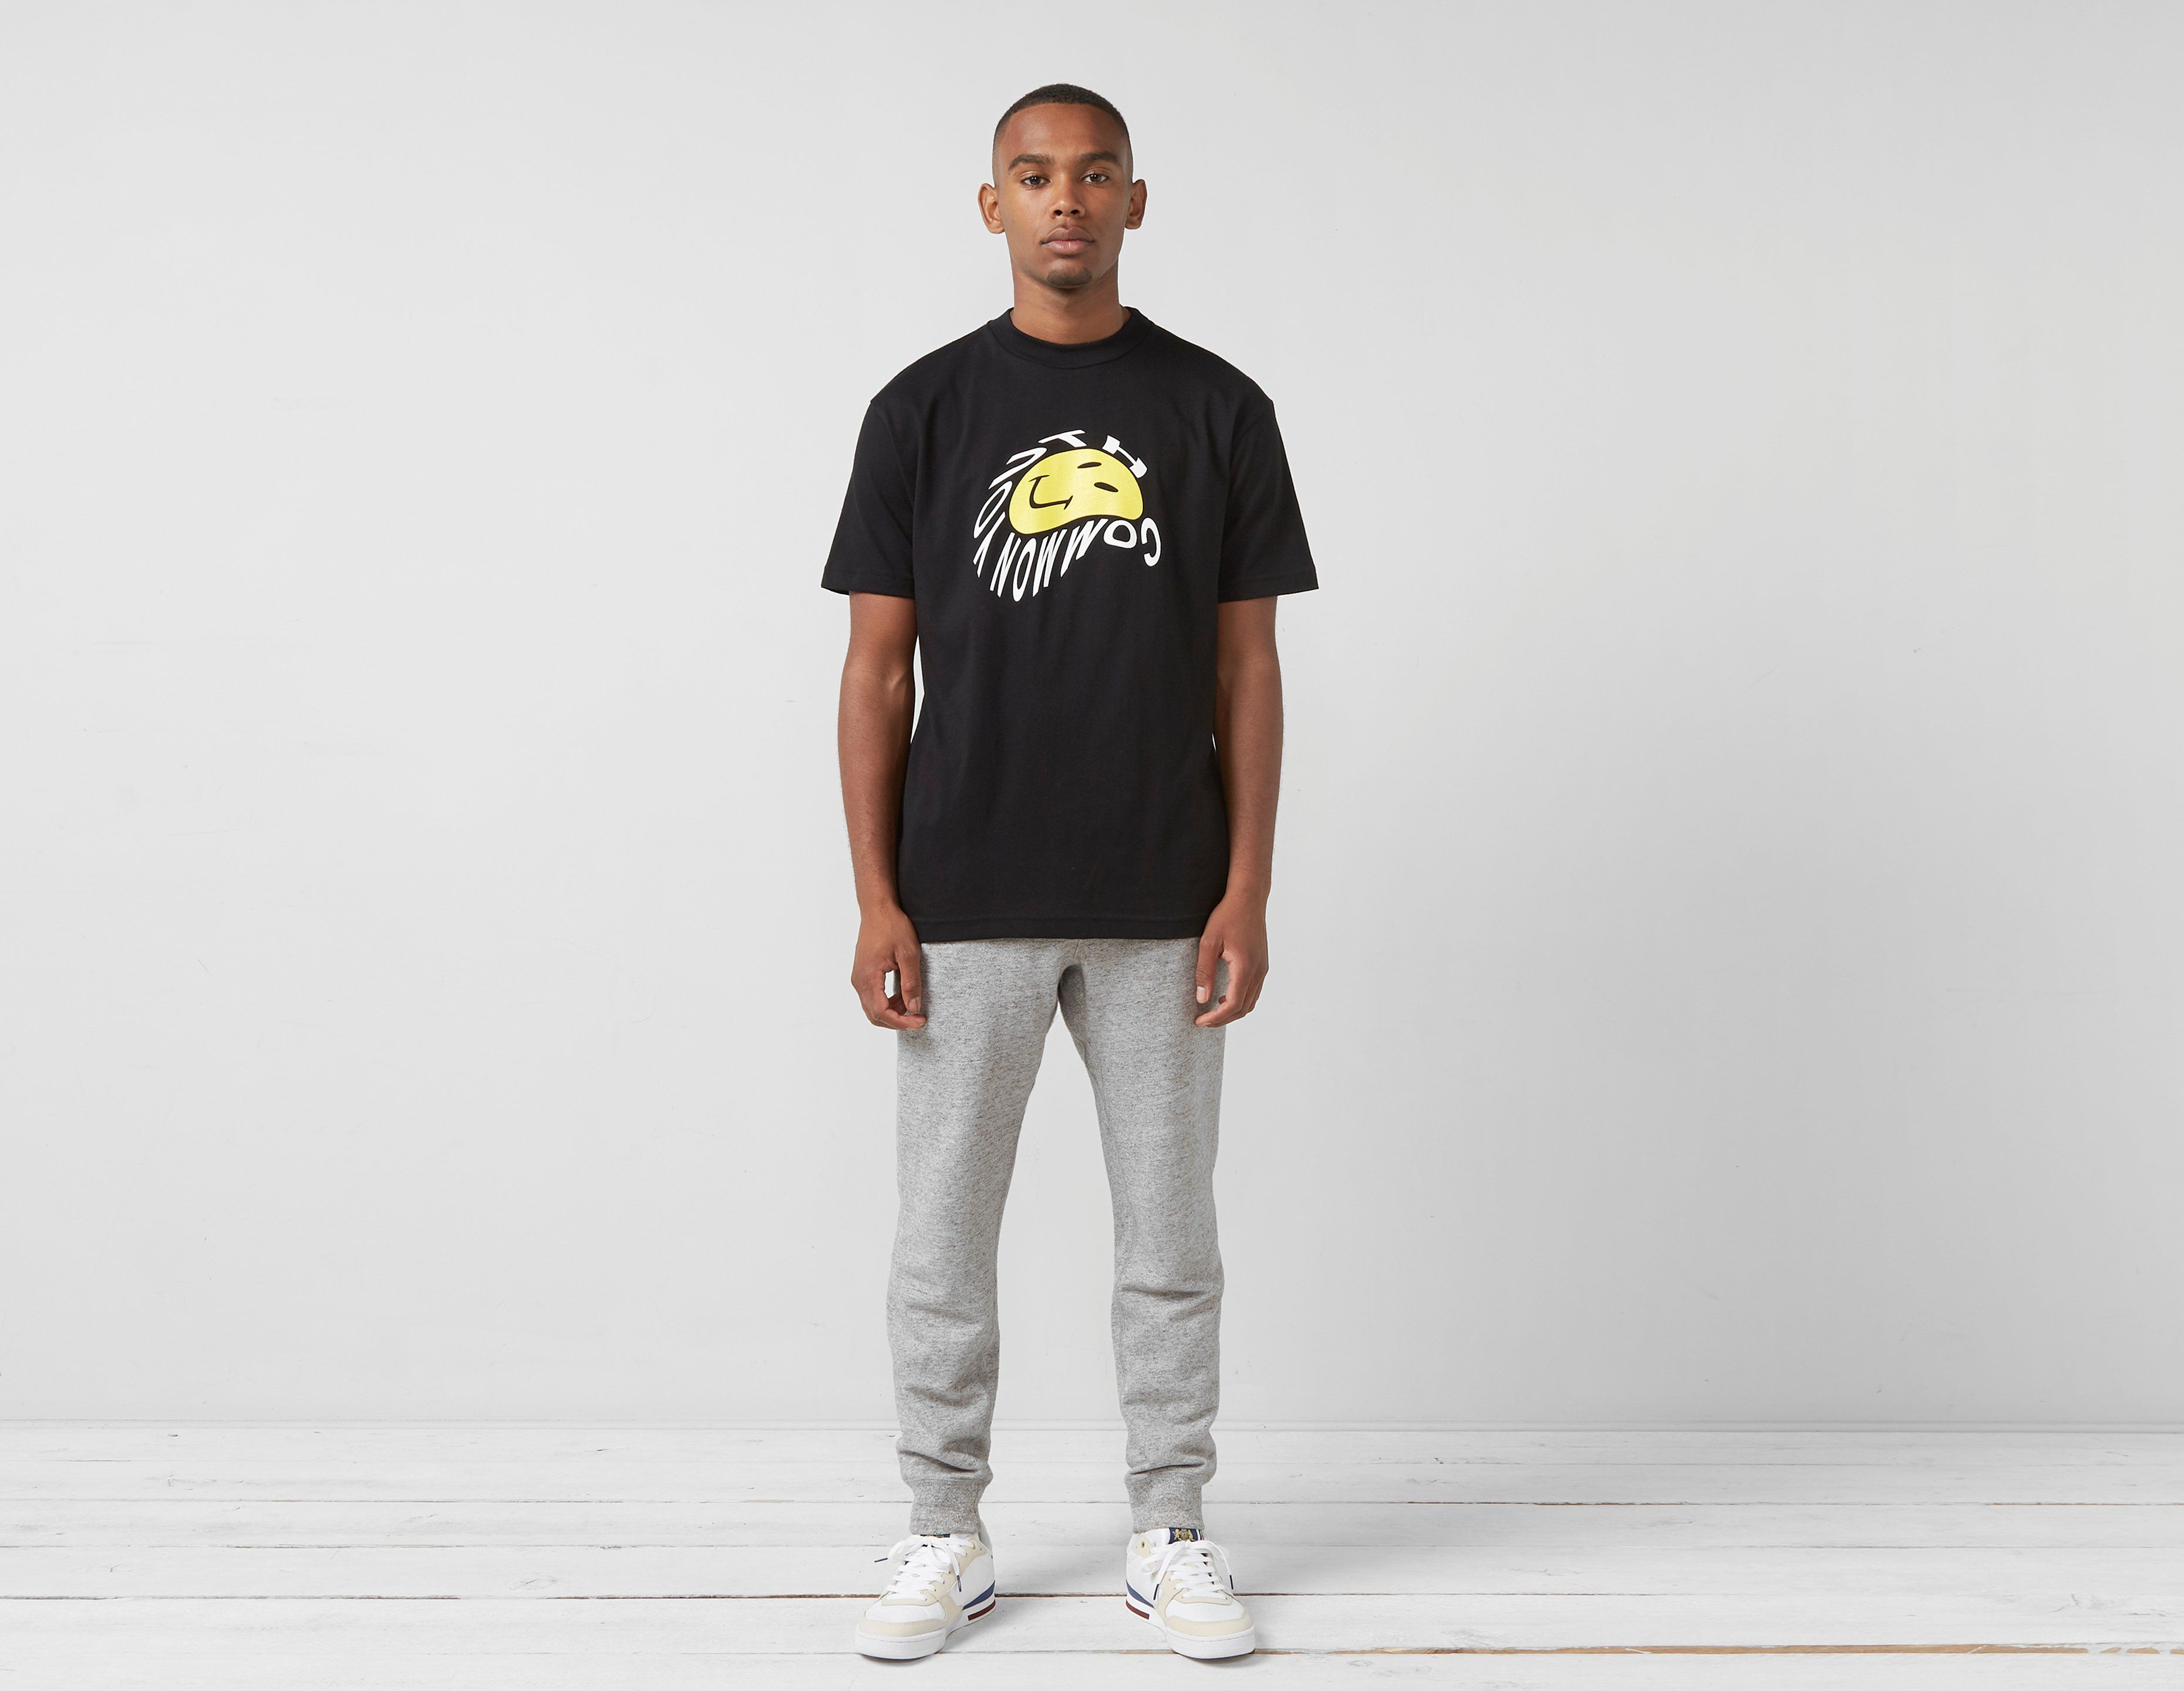 Footpatrol x Highs and Lows x Reebok 'Rave' T-Shirt